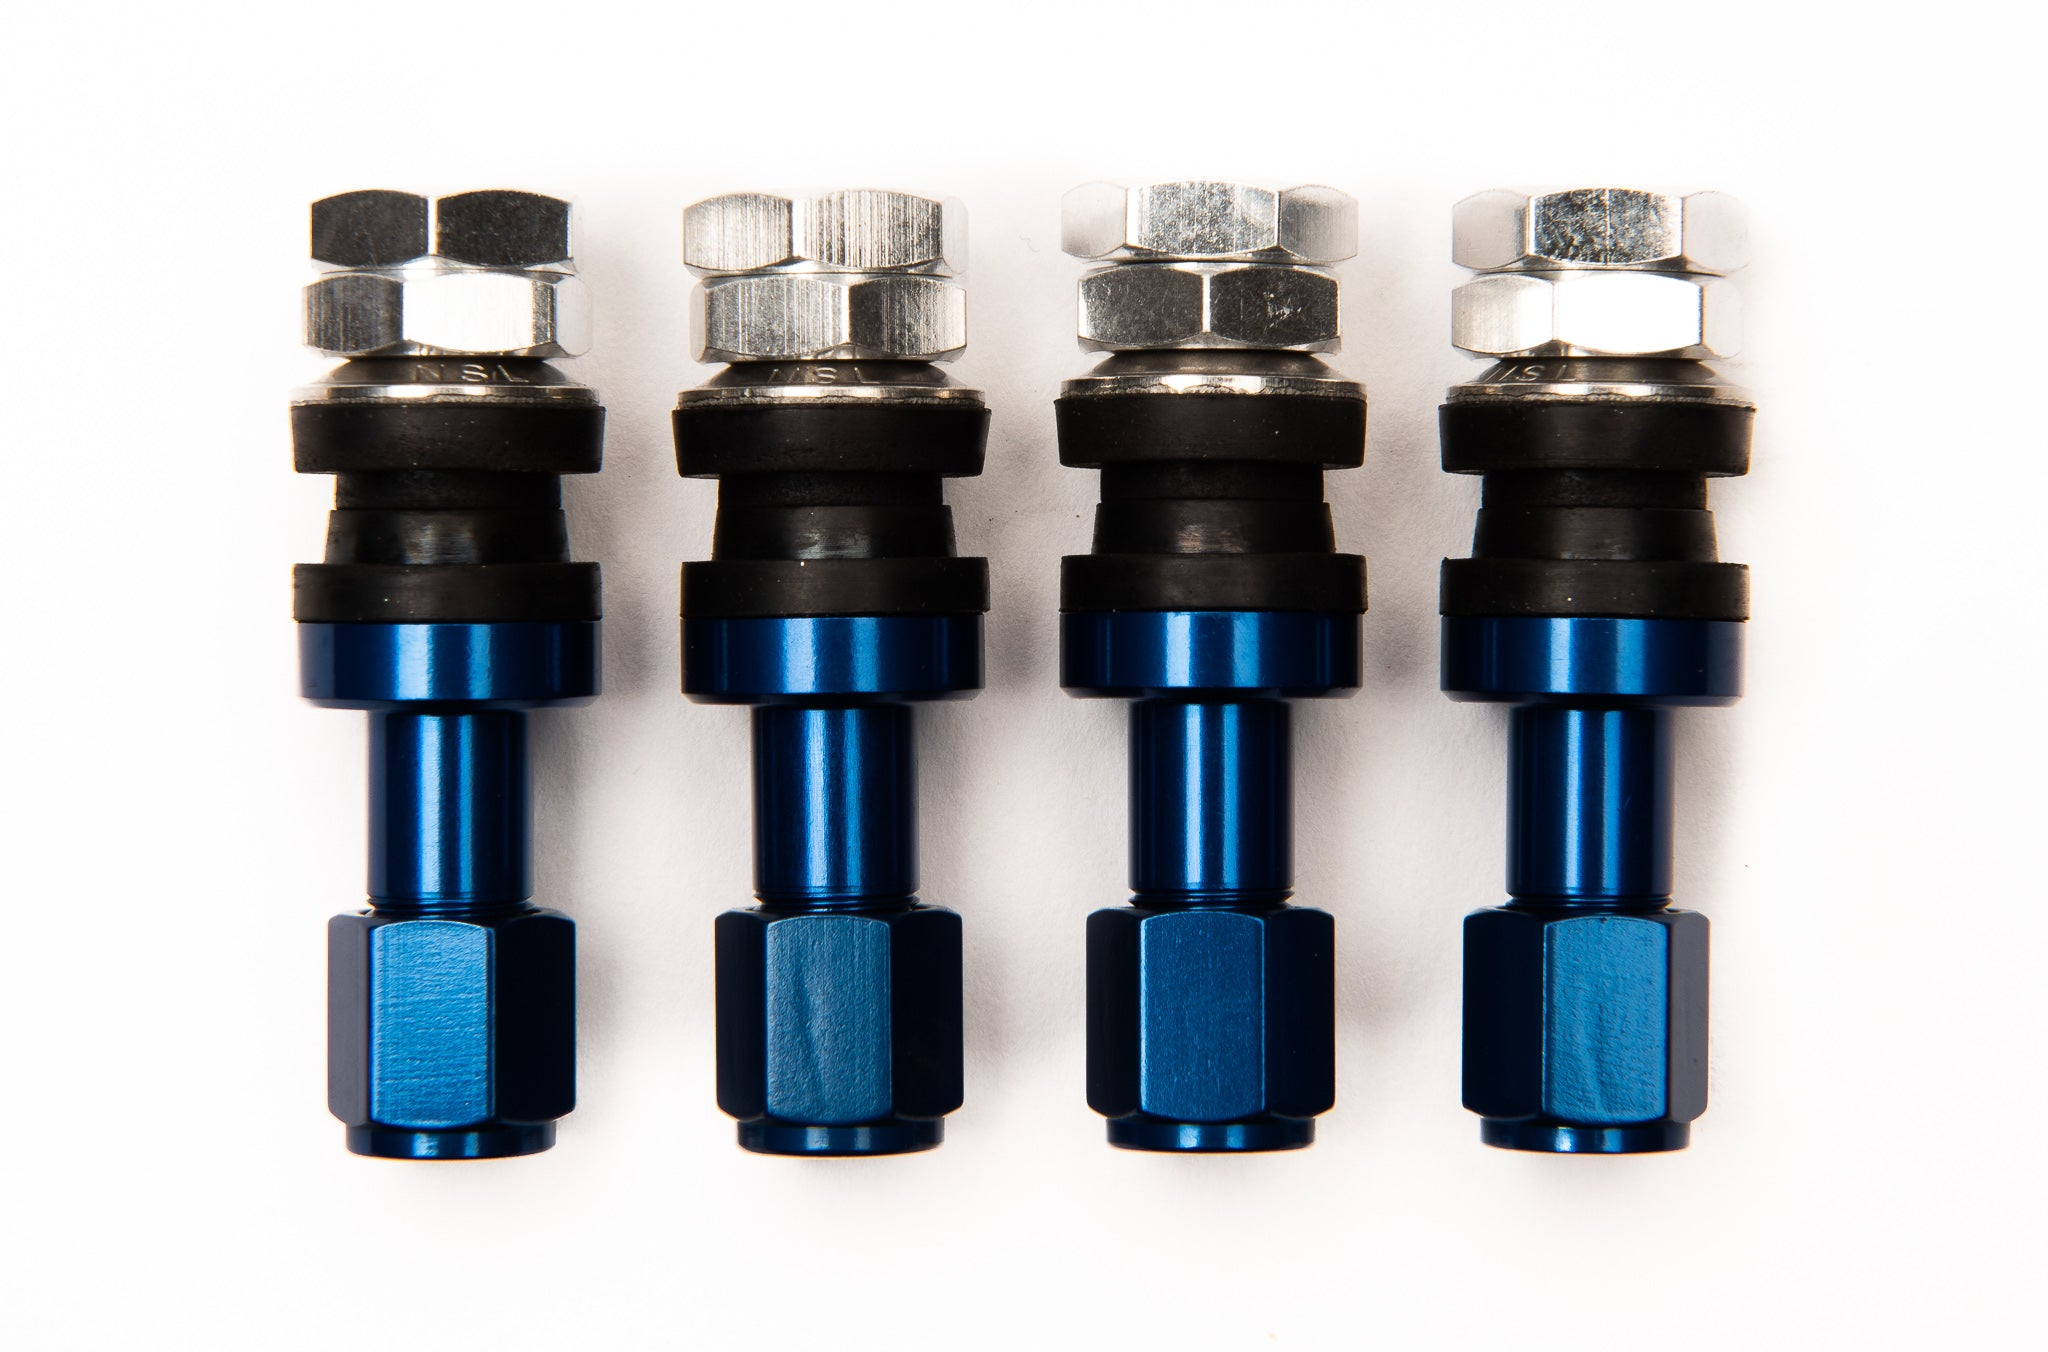 Fasten duraluminum valve stems used for aftermarket wheels. Set 4pcs Blue. Japanese inner valve core